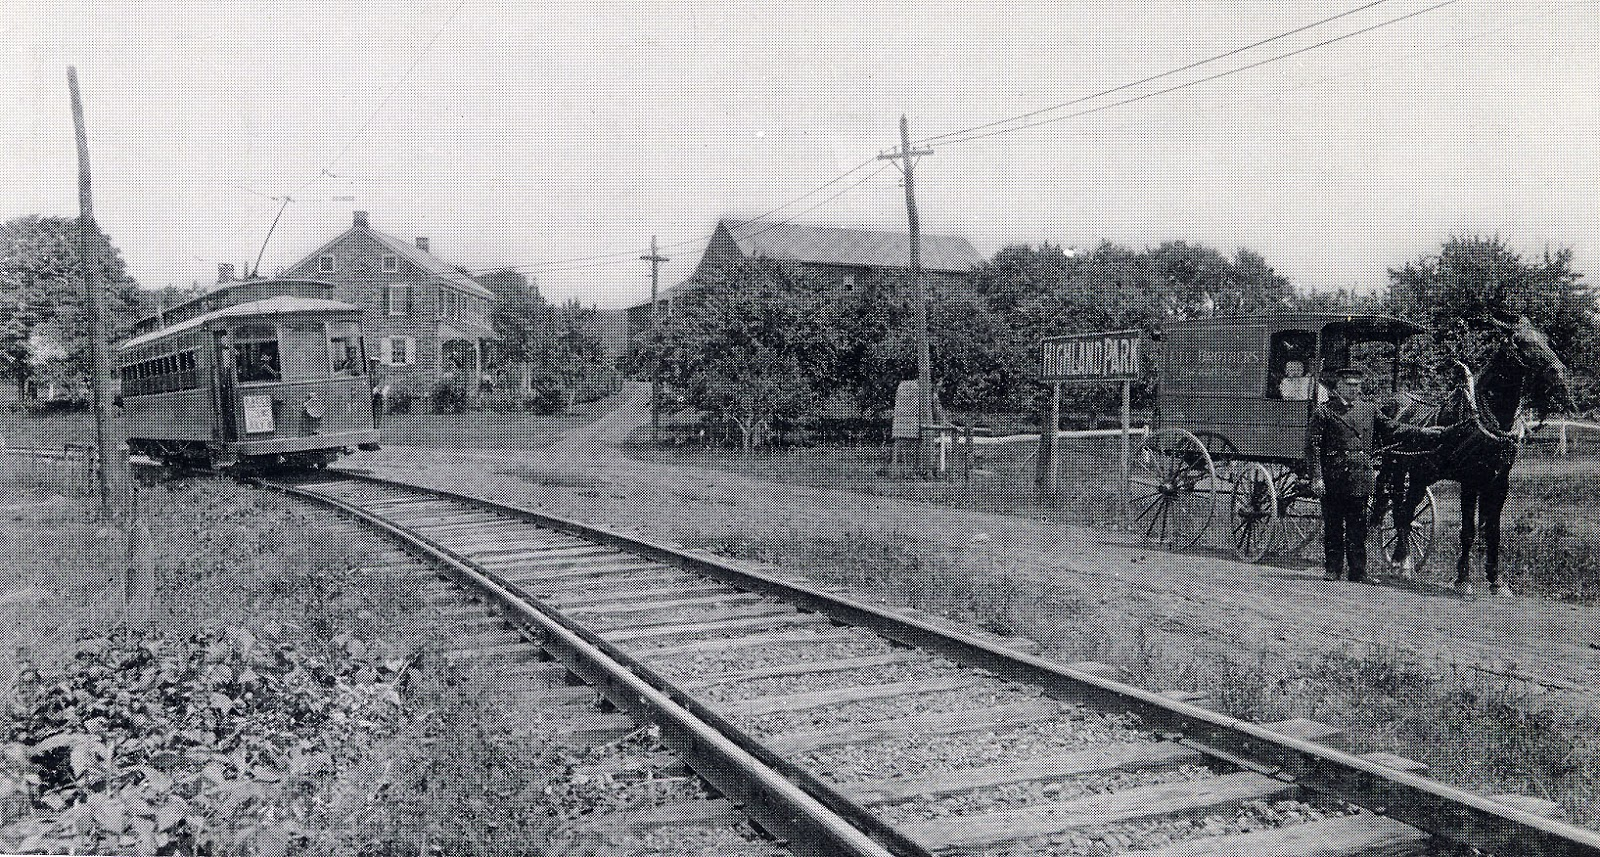 """looking at the history of the delawares Yardley borough  the friends of the delaware canal will host an illustrated program, """"towpaths and tales, an aerial photographic history of the canals along the delaware river,"""" on wednesday."""